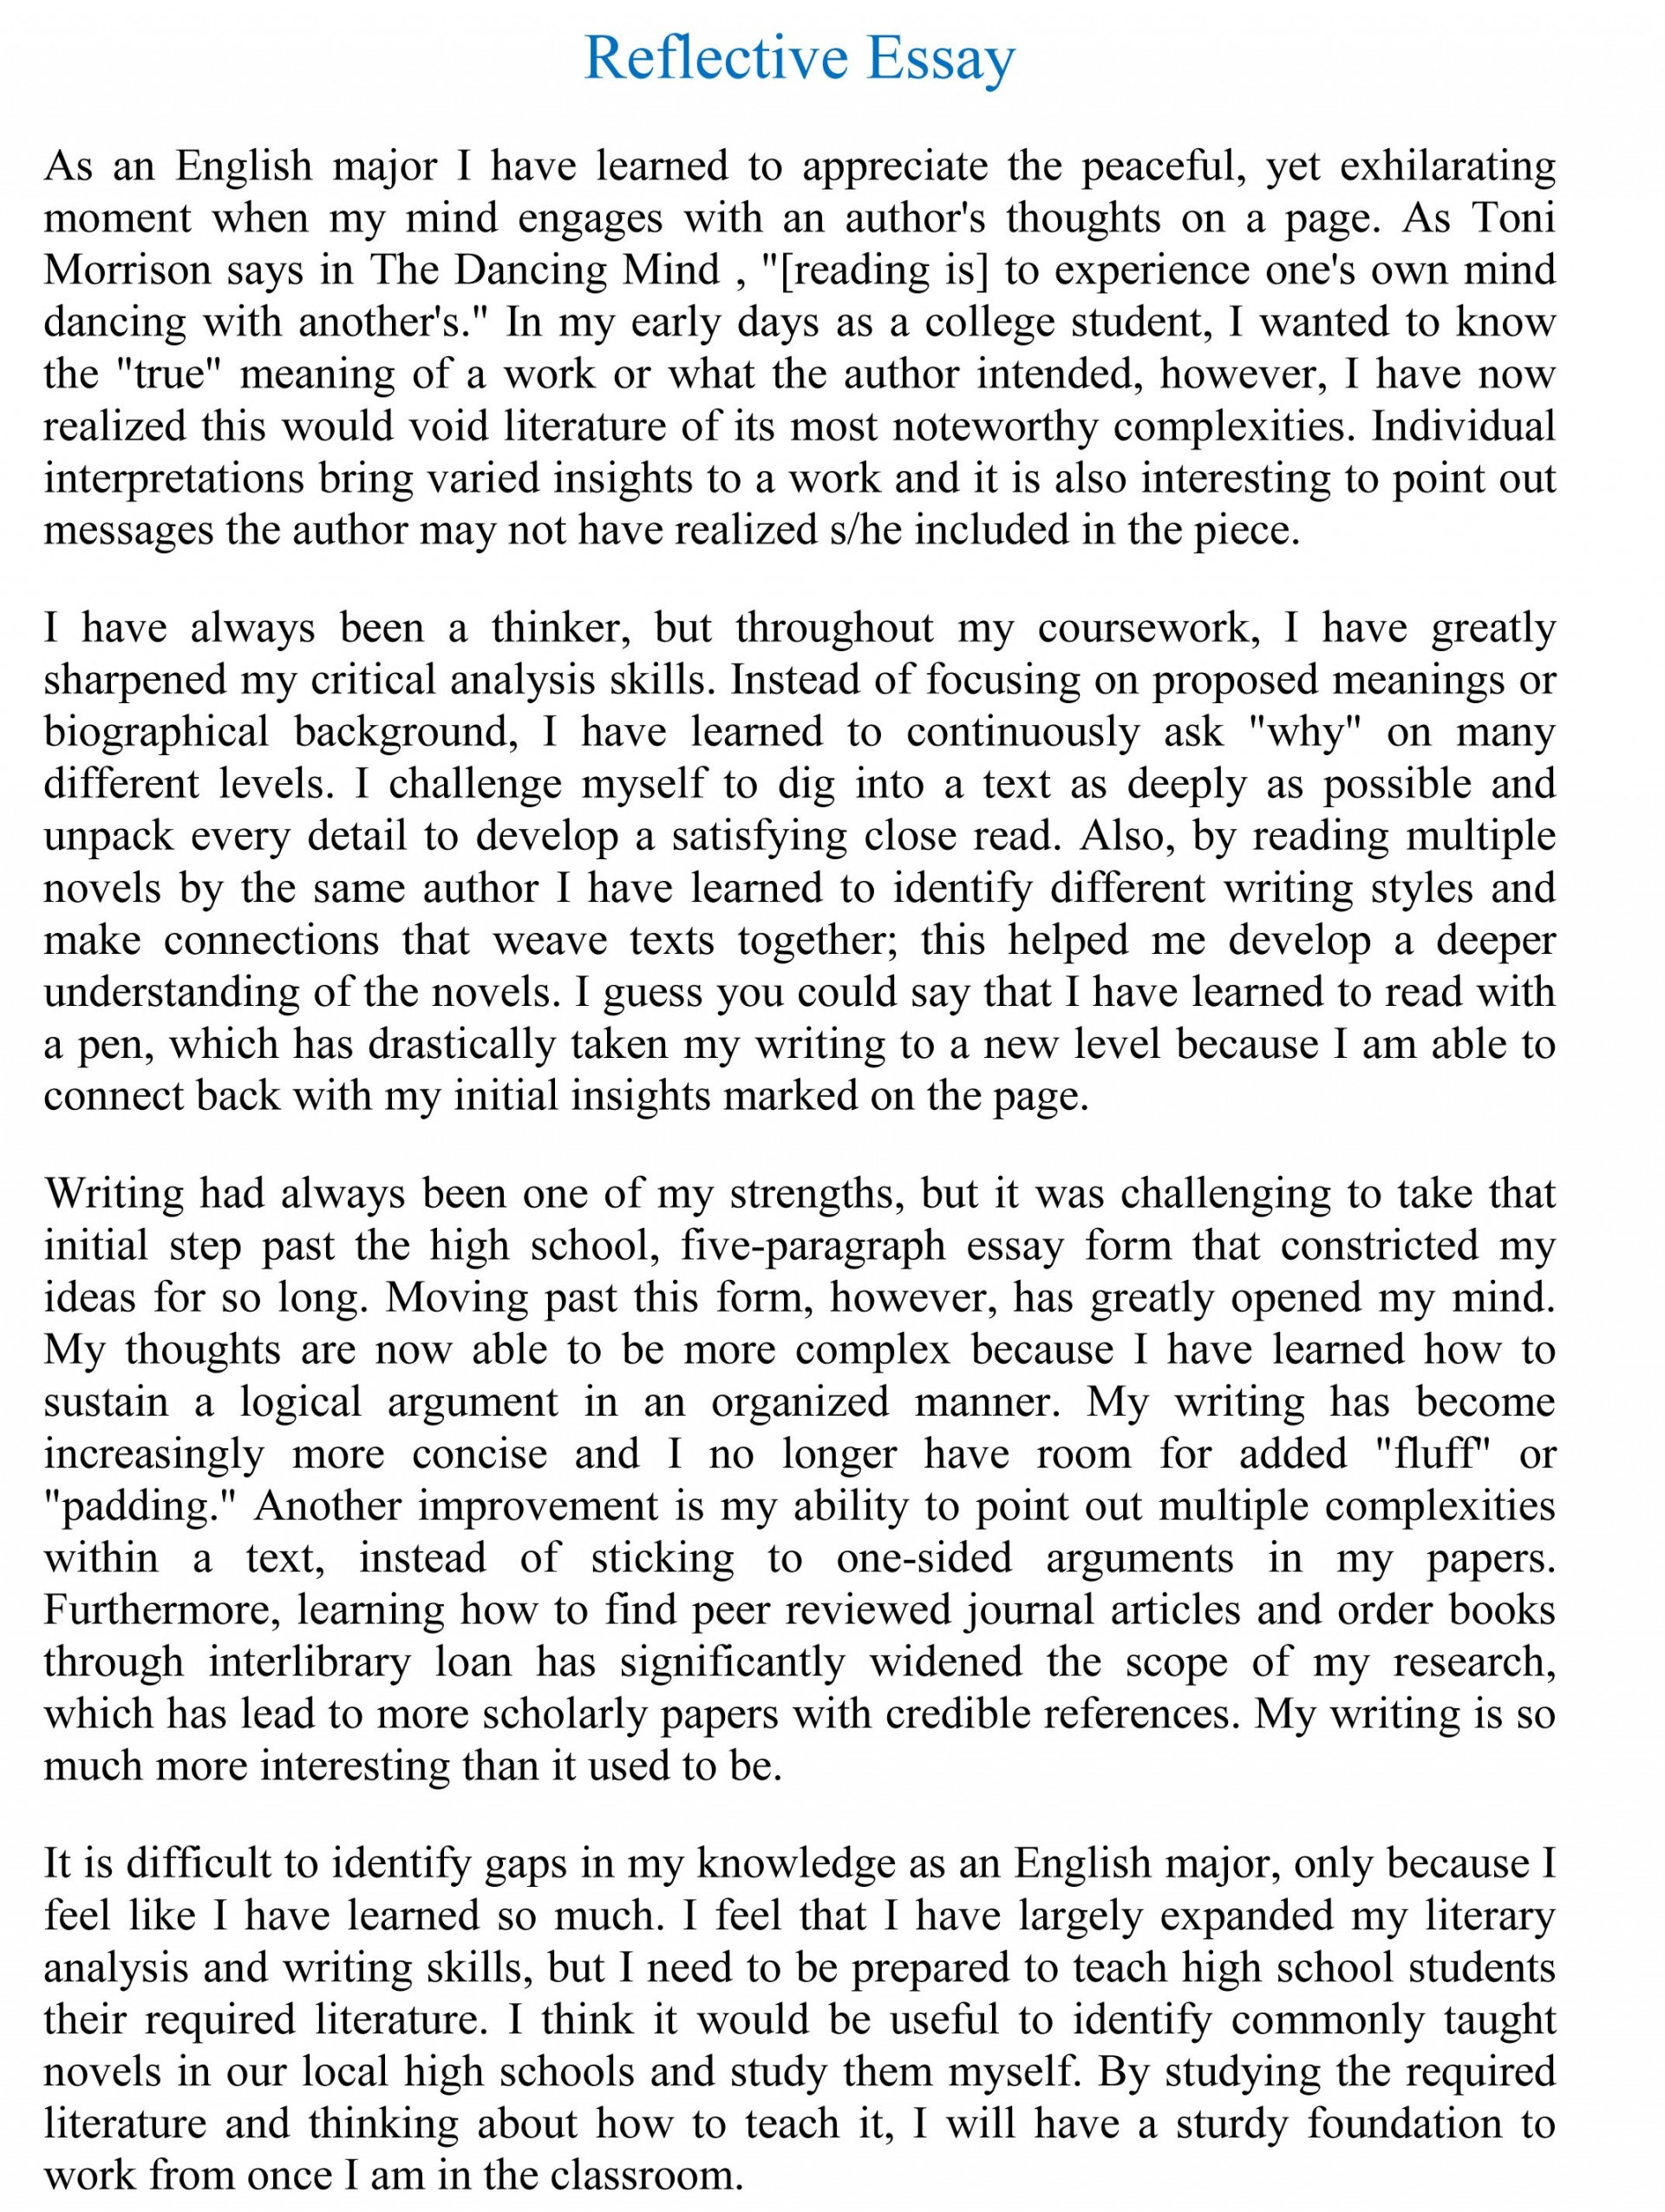 003 Reflective Essay Sample Example How To Marvelous Write A Introduction On Book Do You 1920